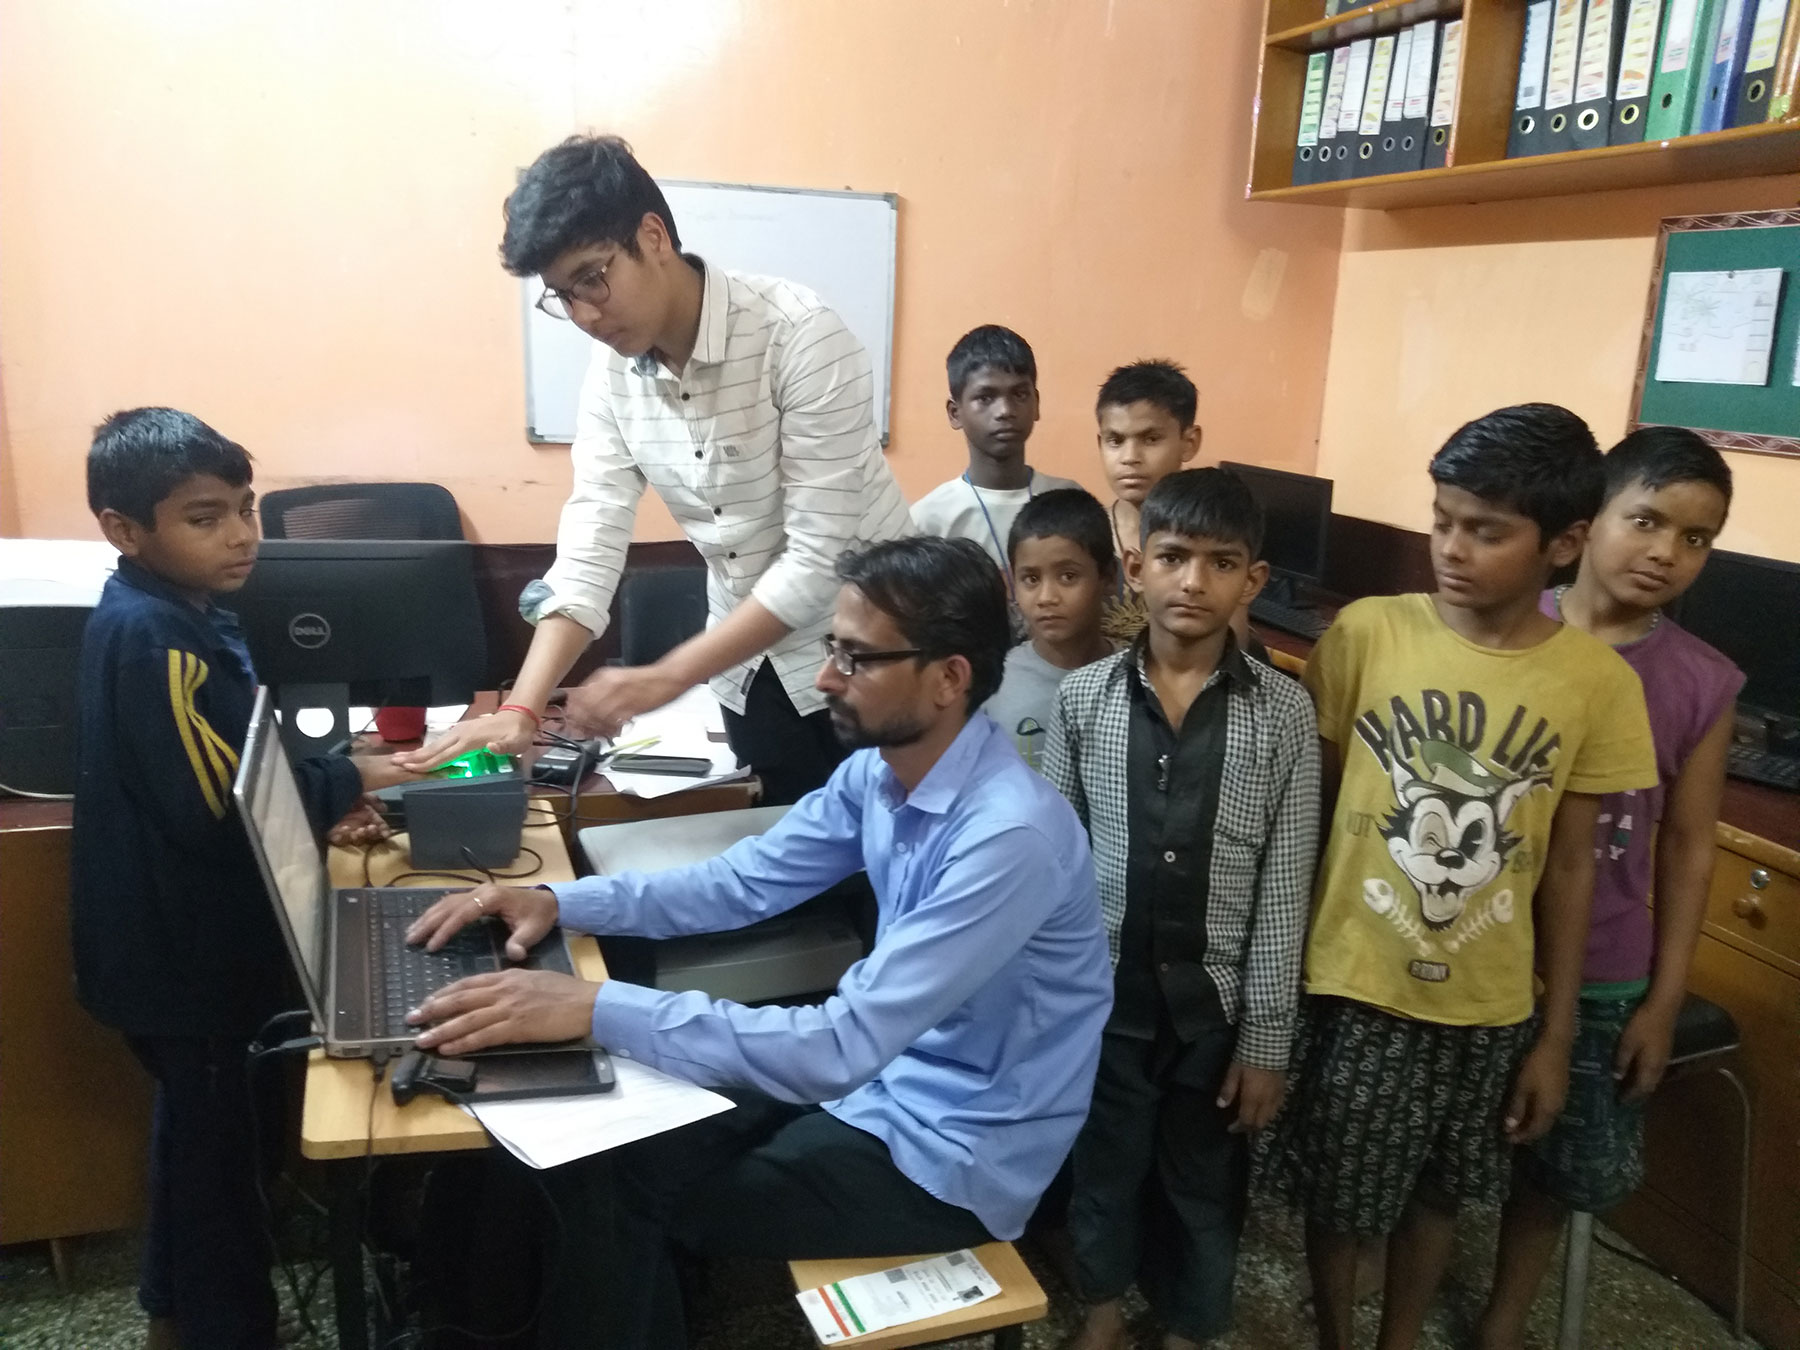 Aadhaar Enrolment of kids at Salaam Baalak Trust,New-Delhi